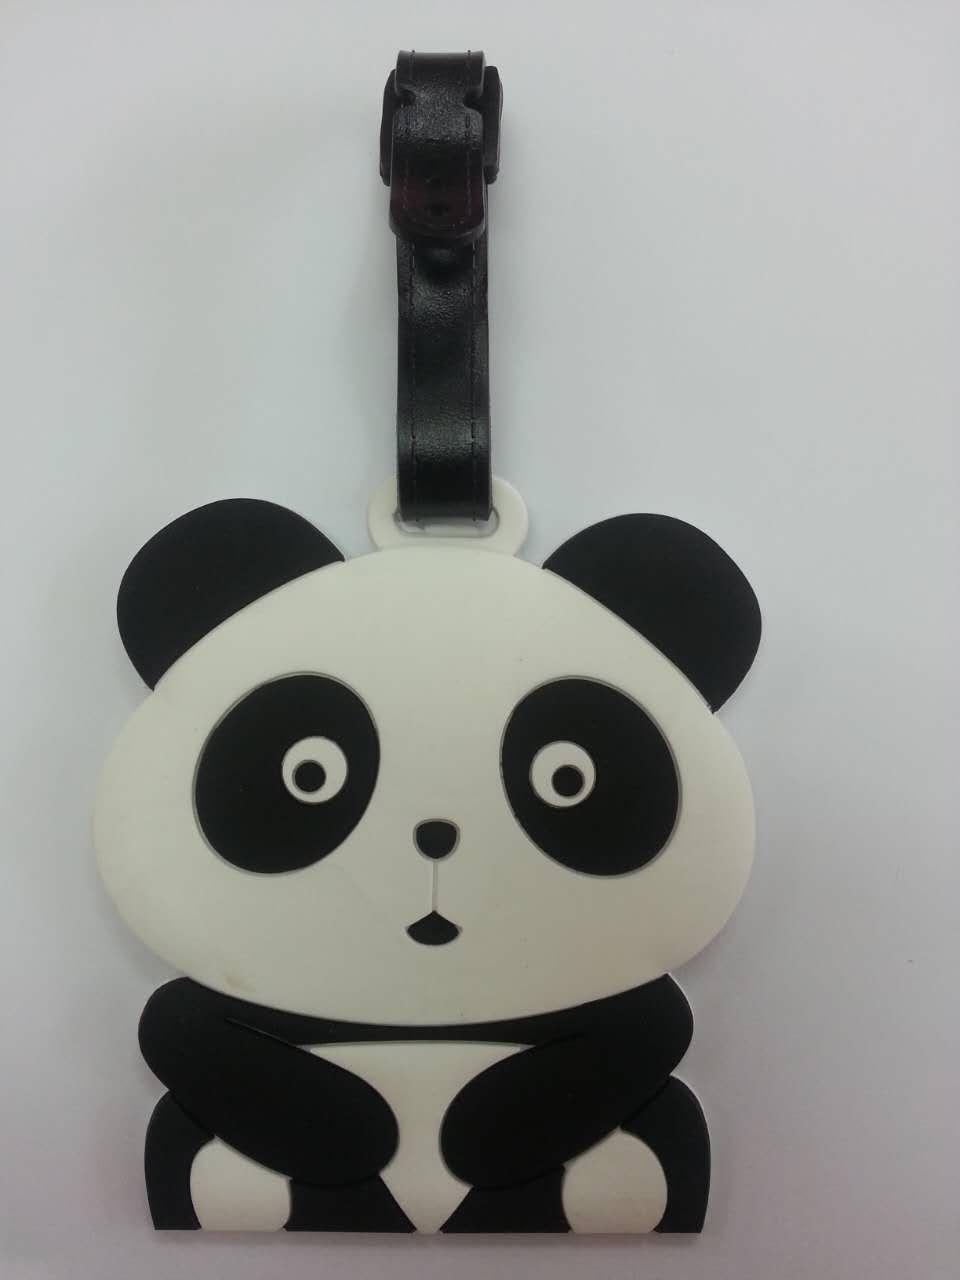 Travel Luggage Tag / Bag Tag - Panda